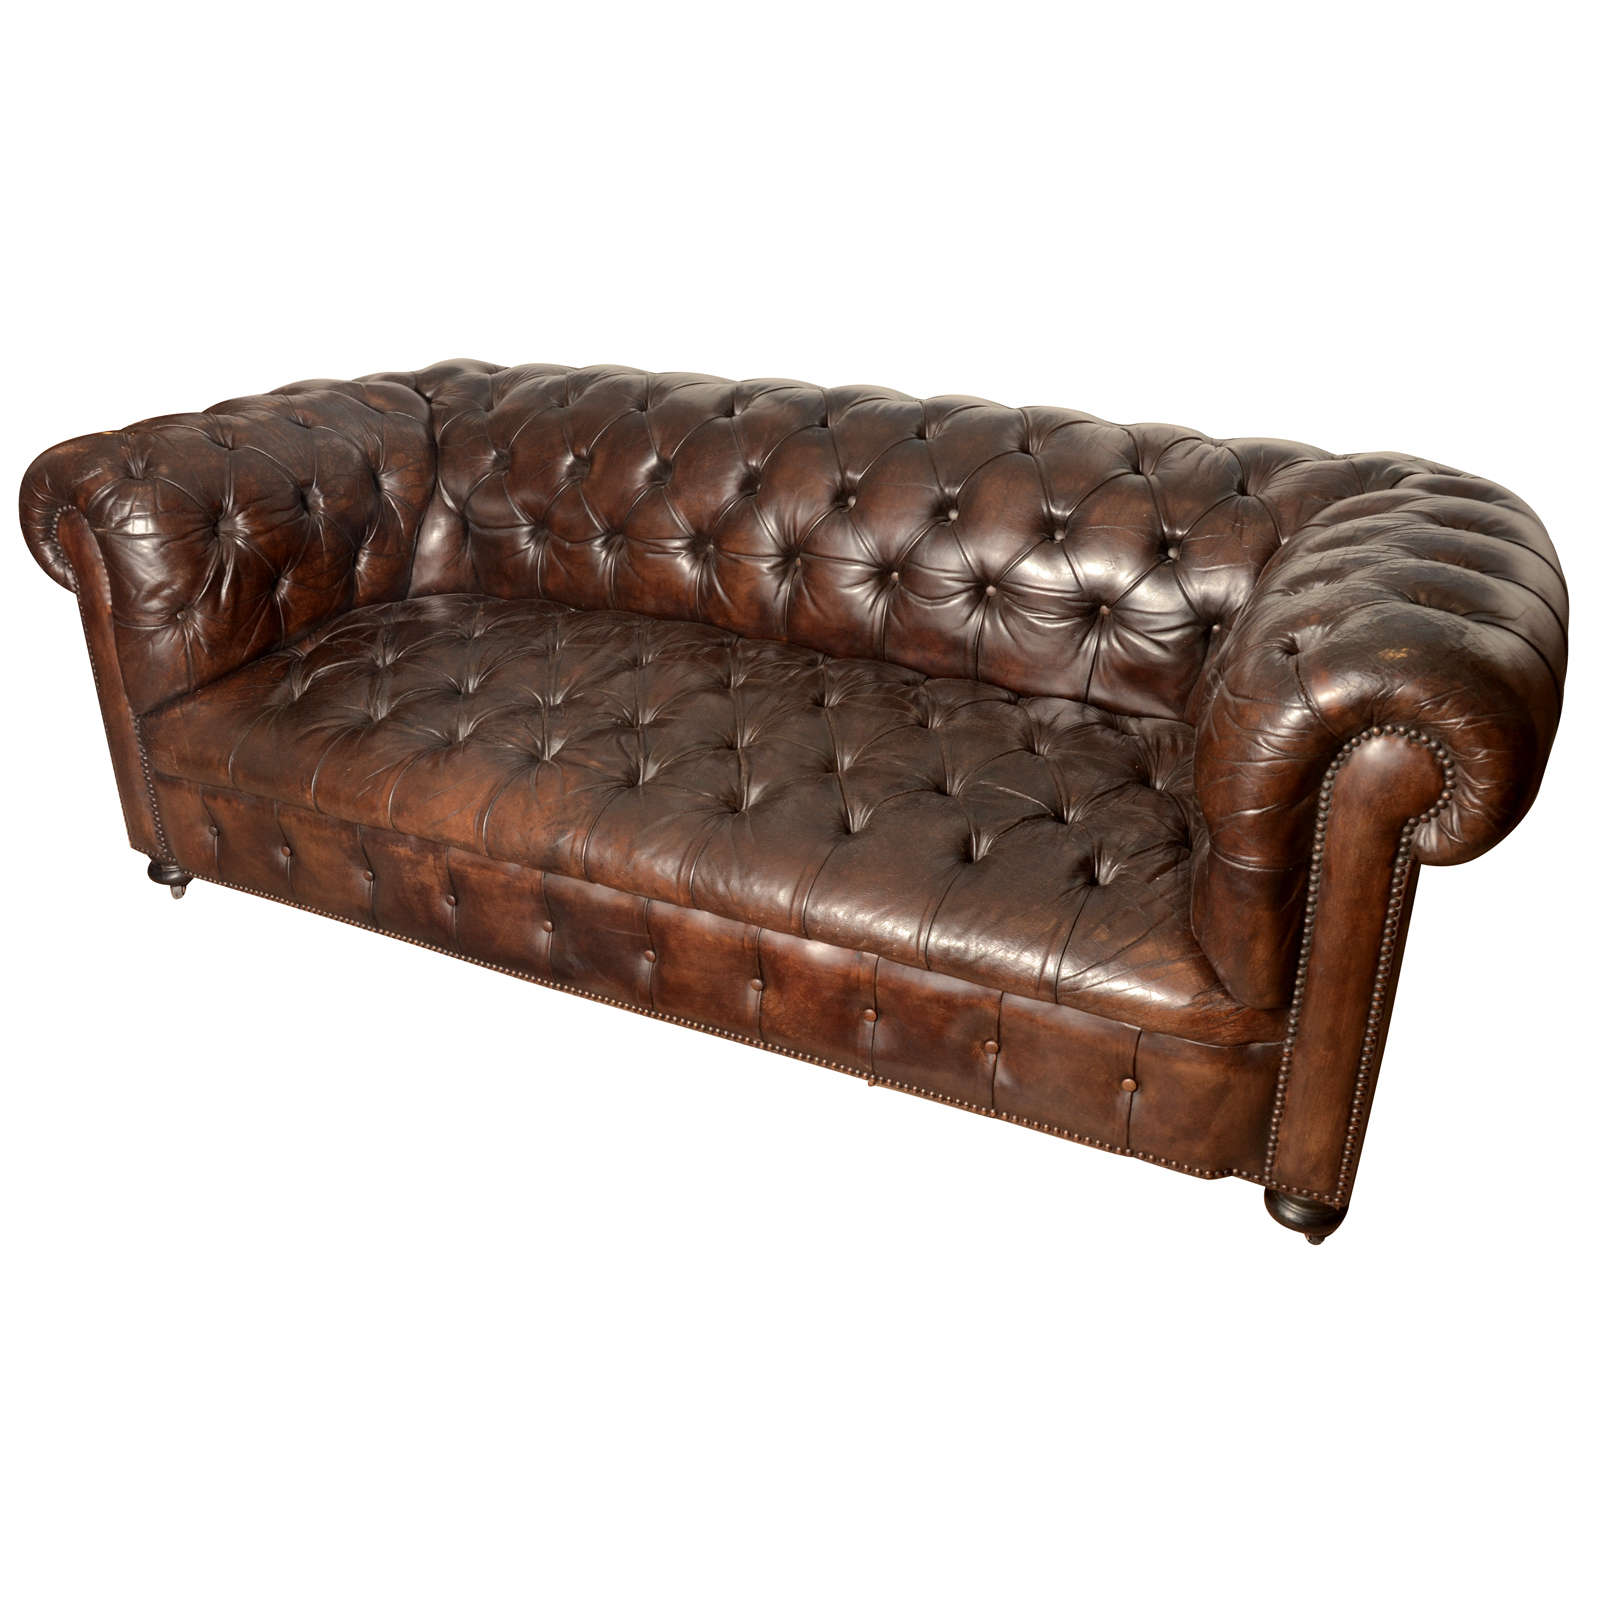 Chesterfield Sofa And Chair French Mid Century Chesterfield Sofa In Dark Brown